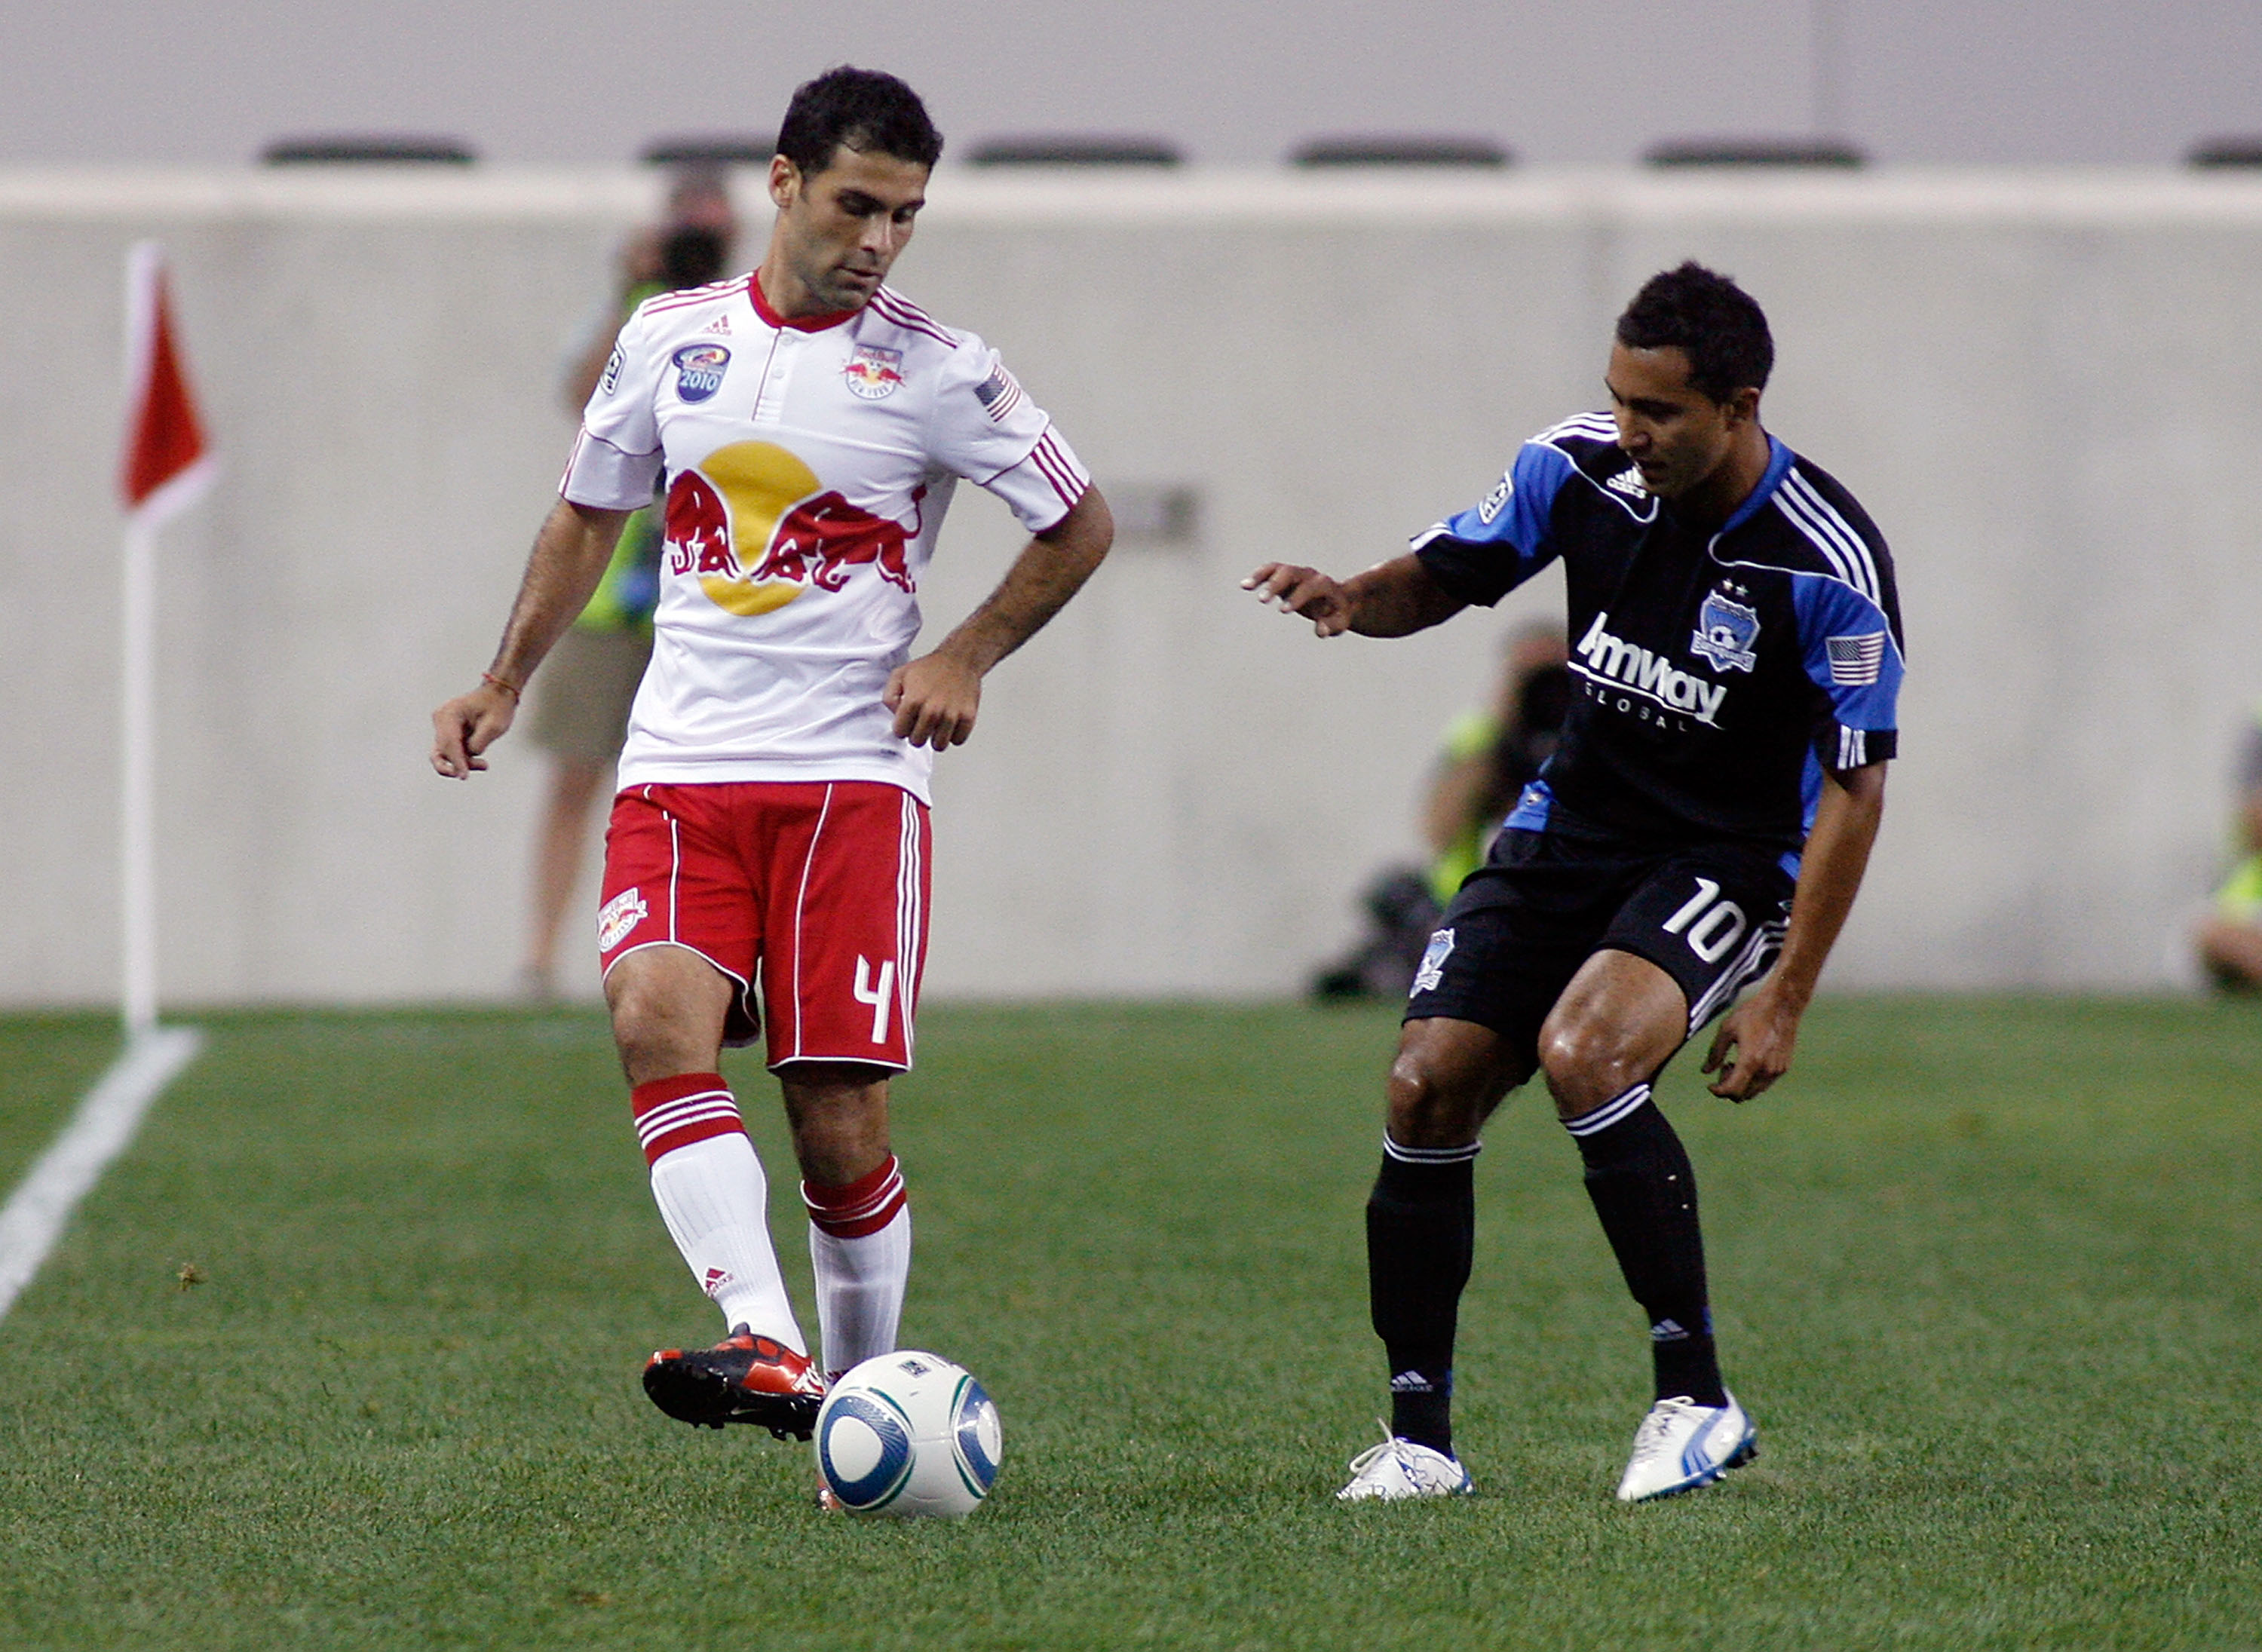 HARRISON, NJ - AUGUST 28: Thierry Henry #14 of the New York Red Bulls celebrates his first MLS goal in the 63rd minute with teammate Juan Pablo Angel #9 against the San Jose Earthquakes on August 28, 2010 at Red Bull Arena in Harrison, New Jersey. (Photo